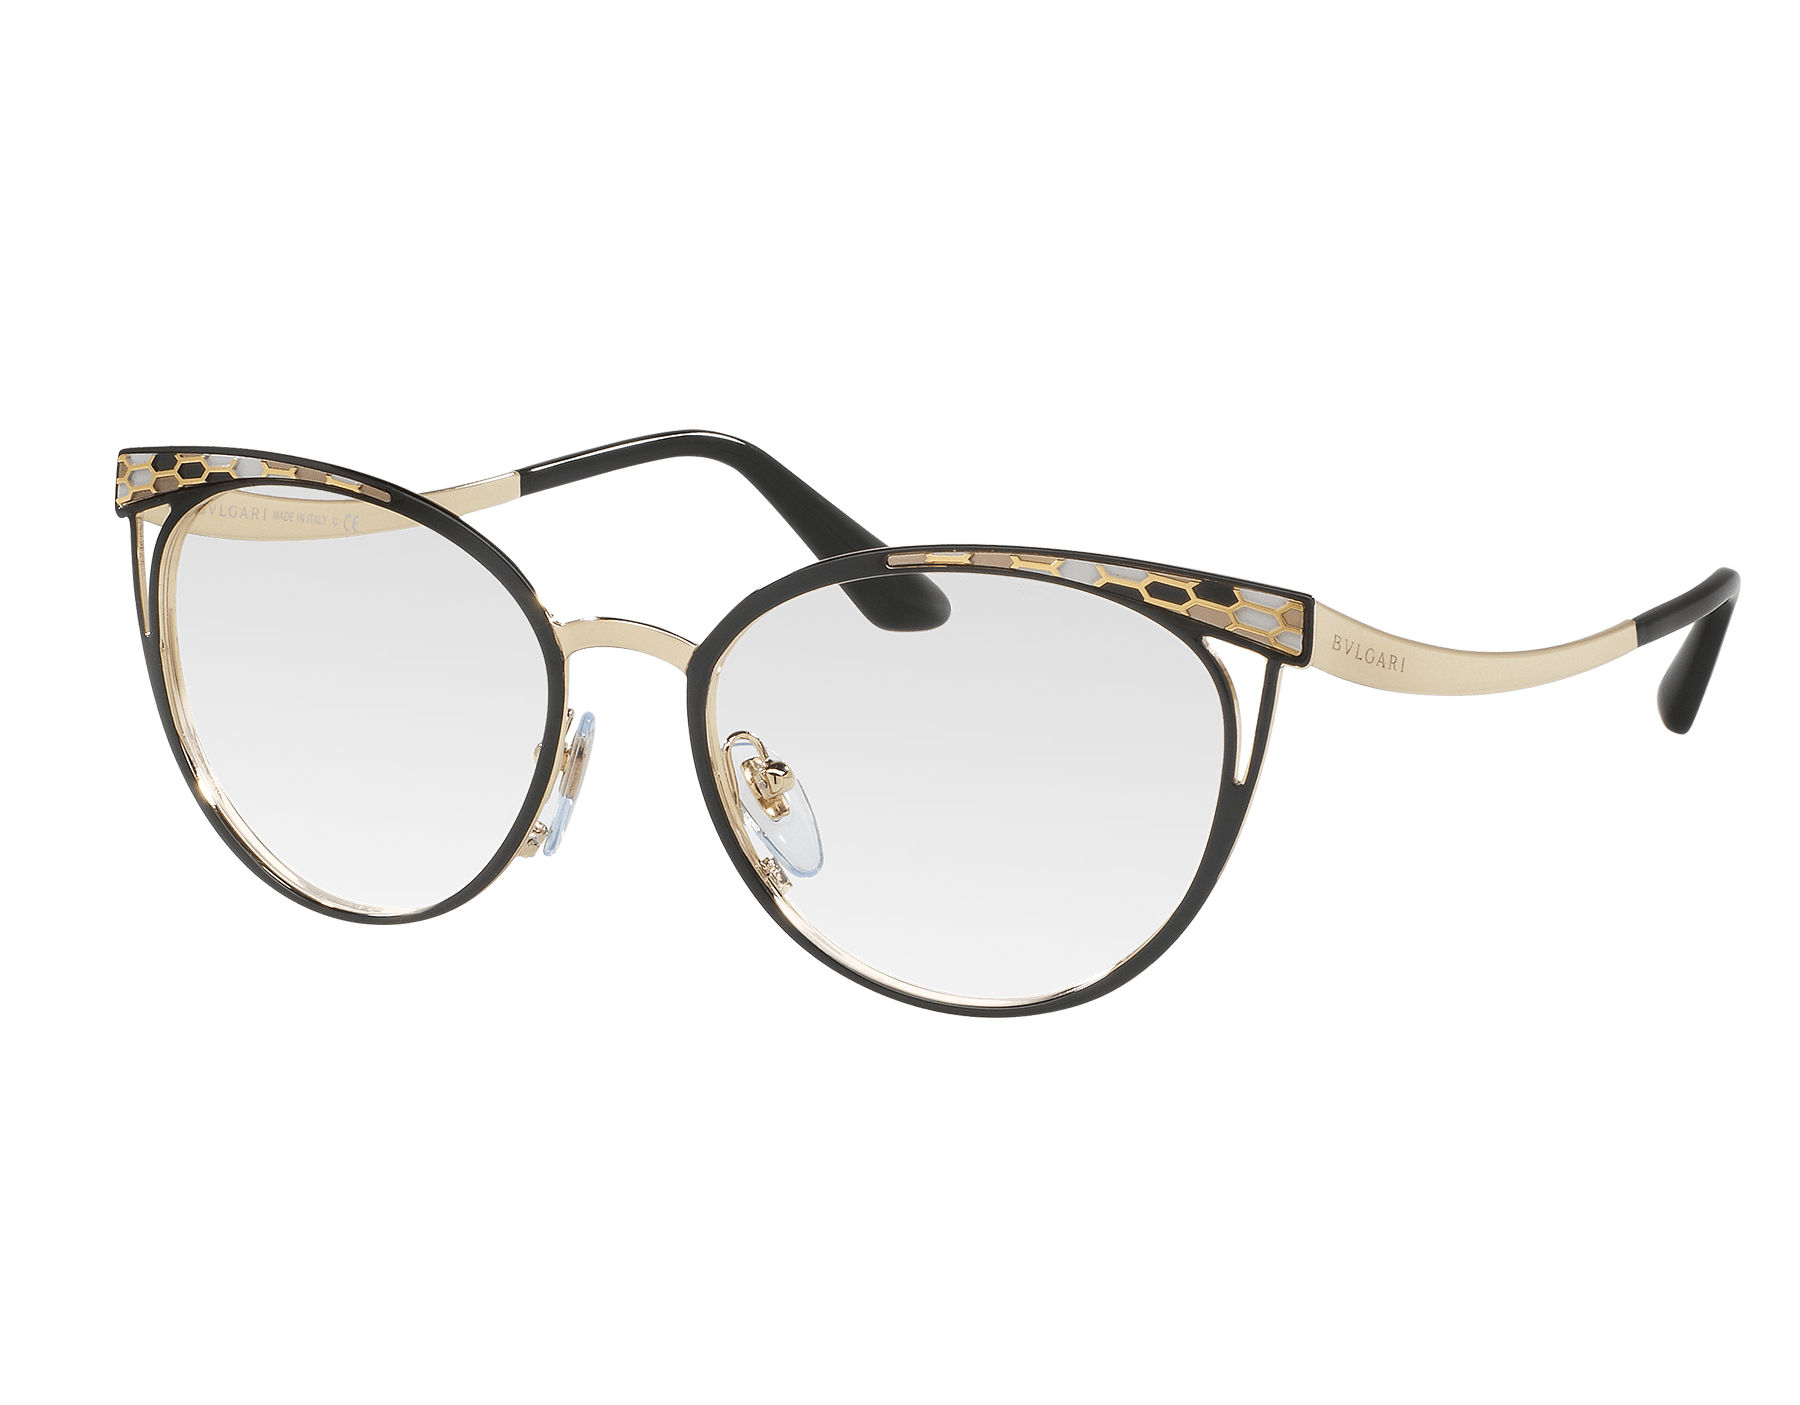 Serpenti catye metal eyeglasses 903116 image 1